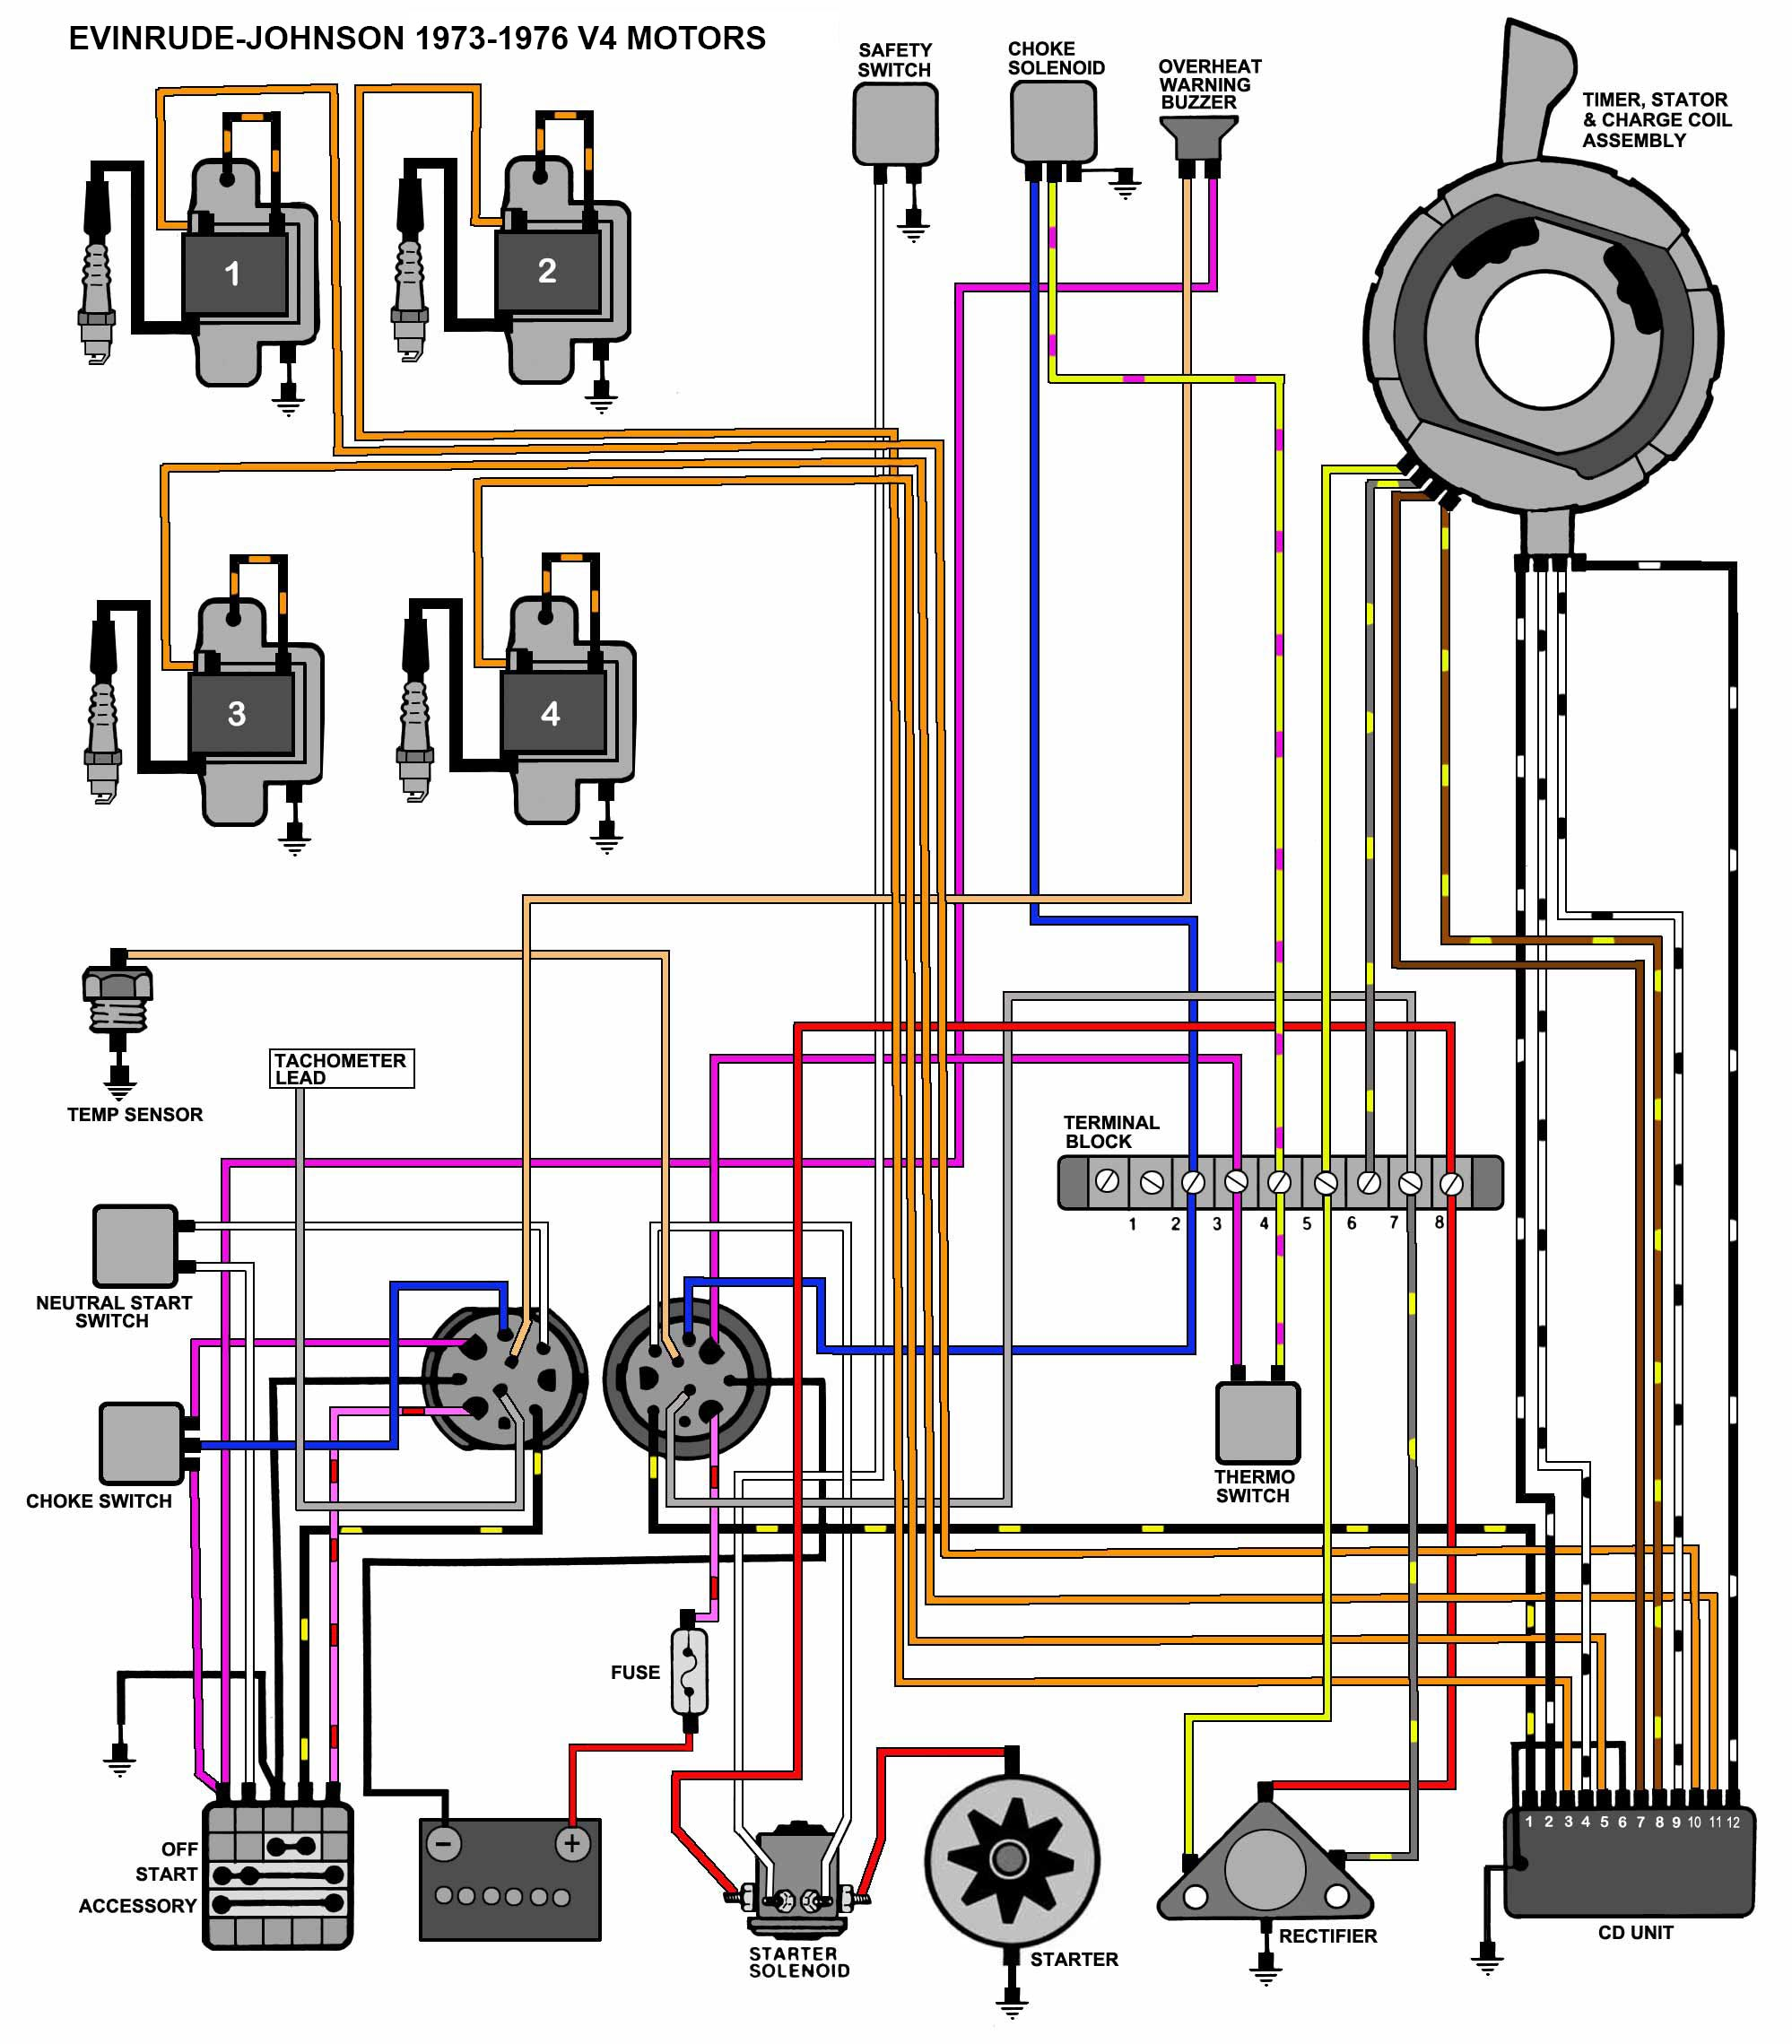 1969 Mercury Outboard Wiring Diagram 2 stroke 40 hp mercury ... on hp panel diagram, hp networking diagram, hp computer diagram, hp parts diagram, hp piping diagram, hp battery diagram, hp hardware diagram, hp power supply diagram, hp cable diagram,